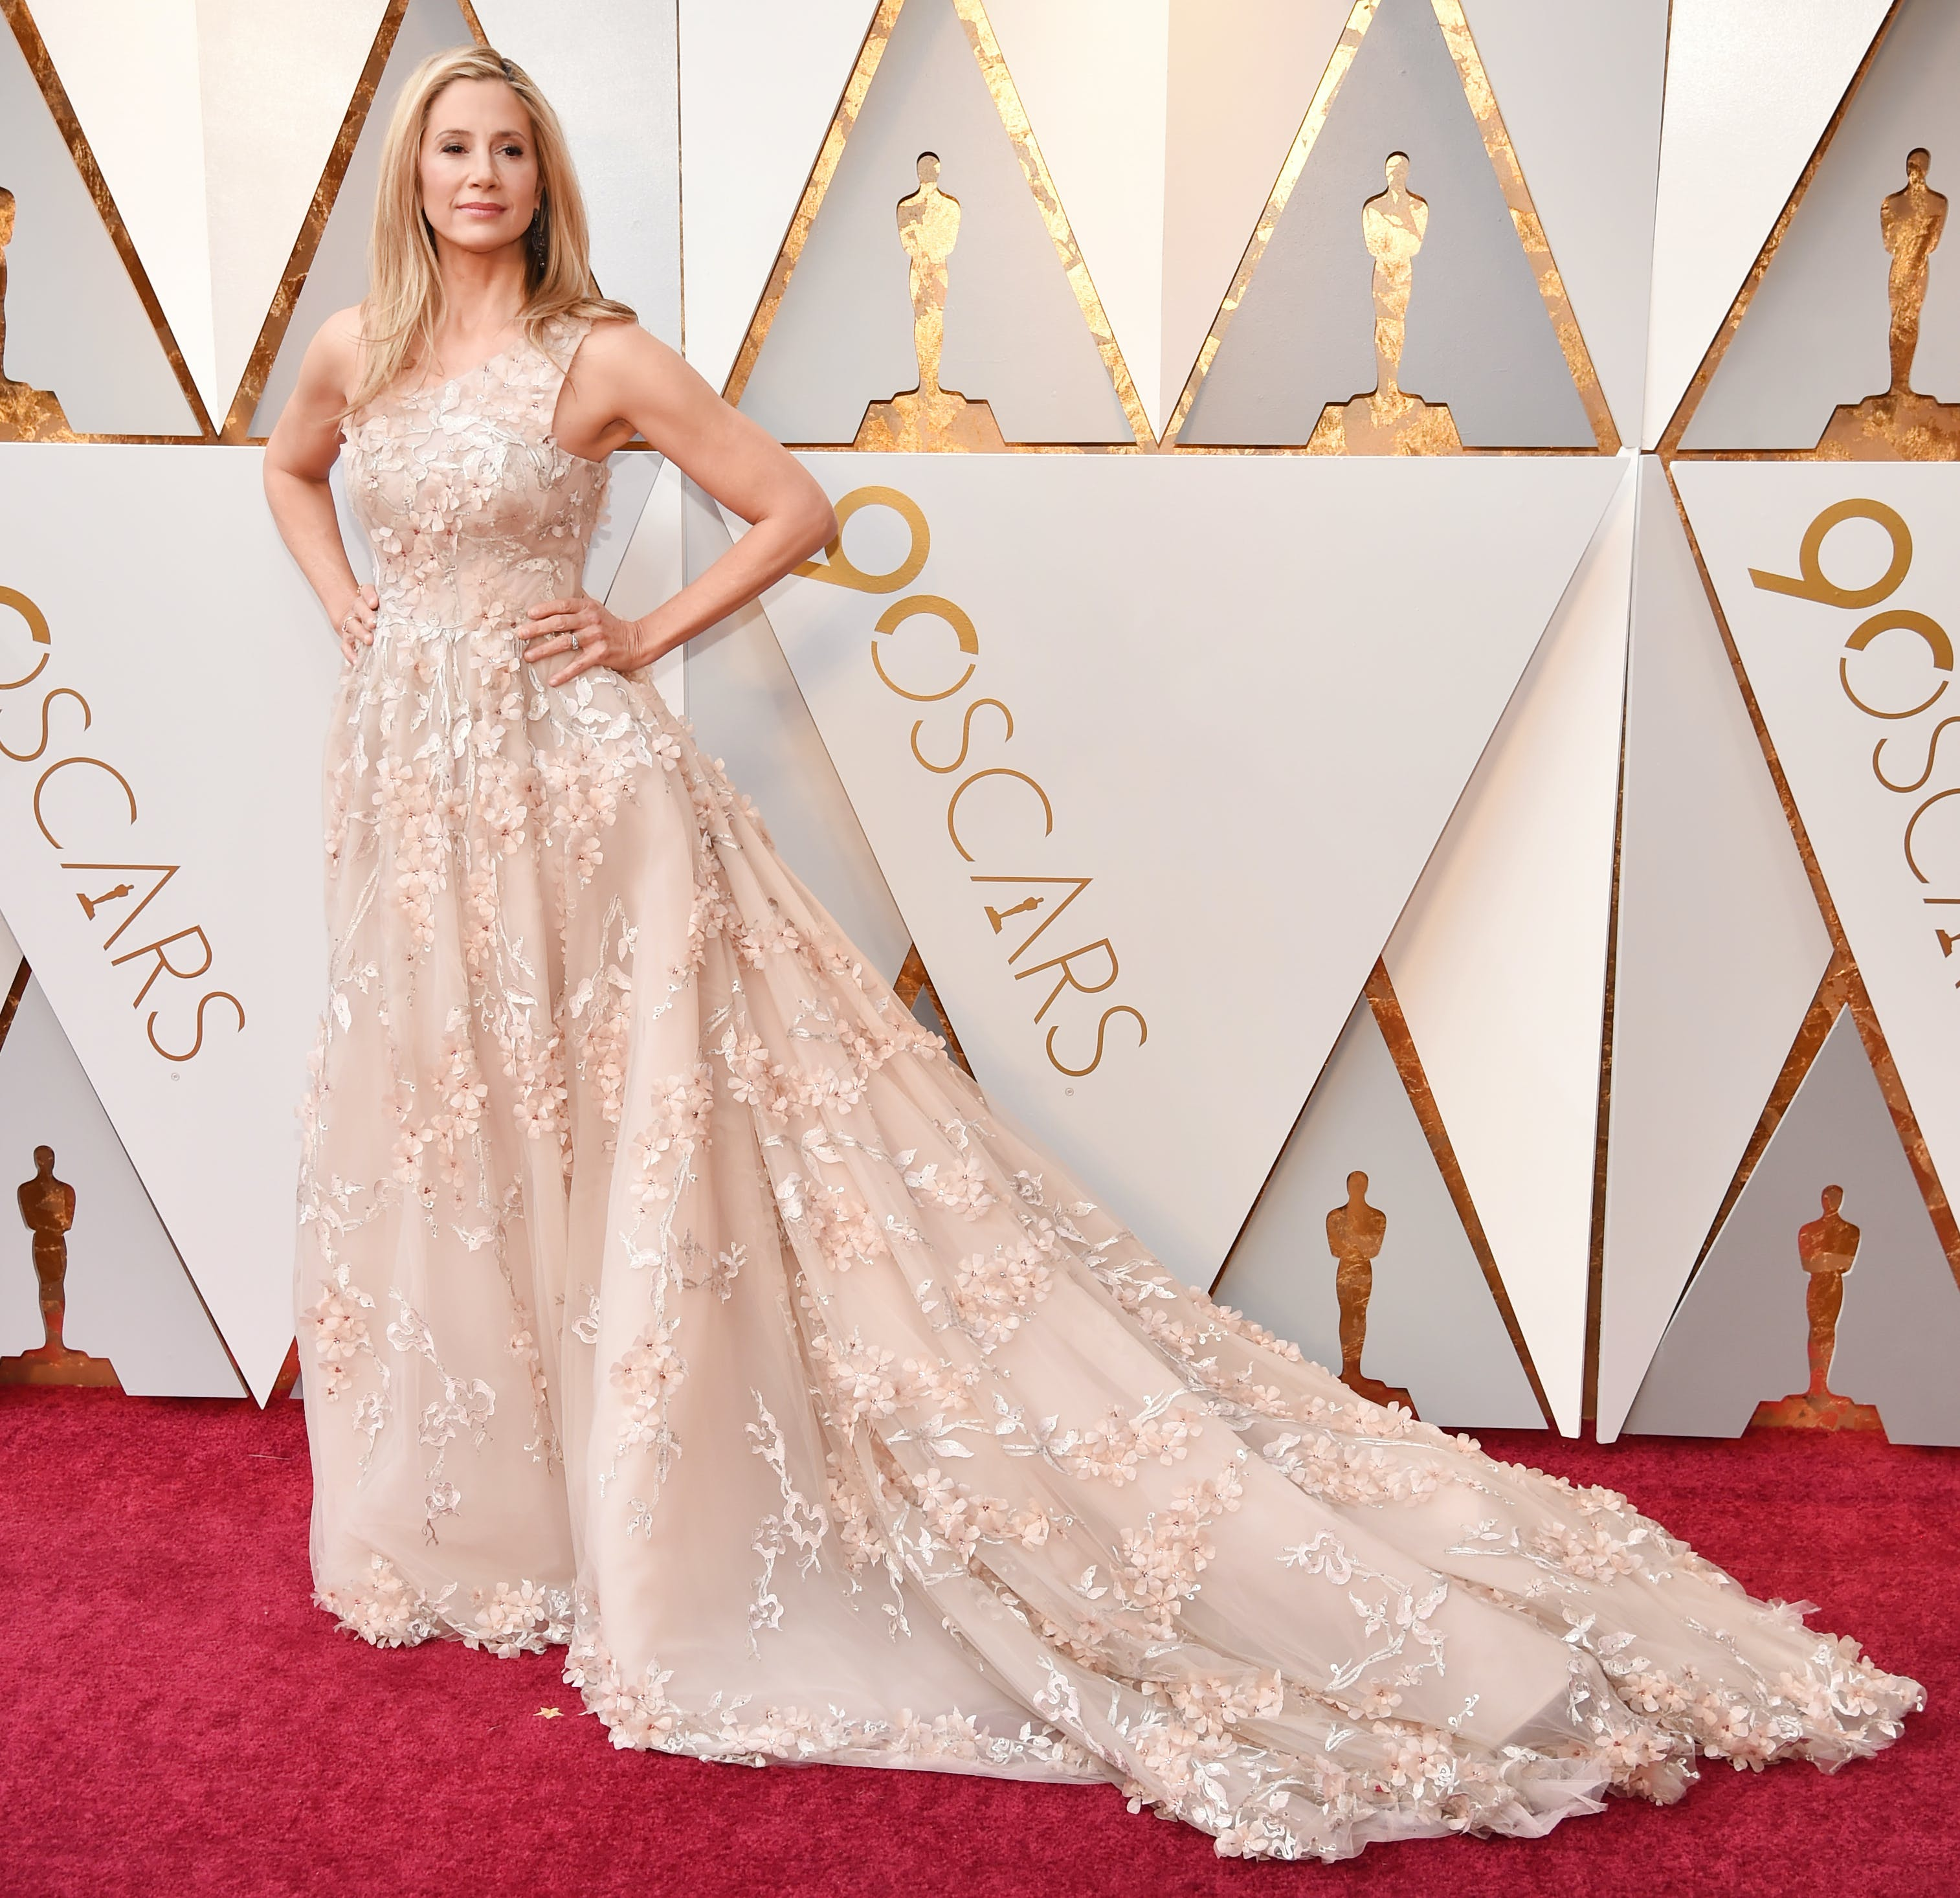 Mira Sorvino at the 2018 Oscars1